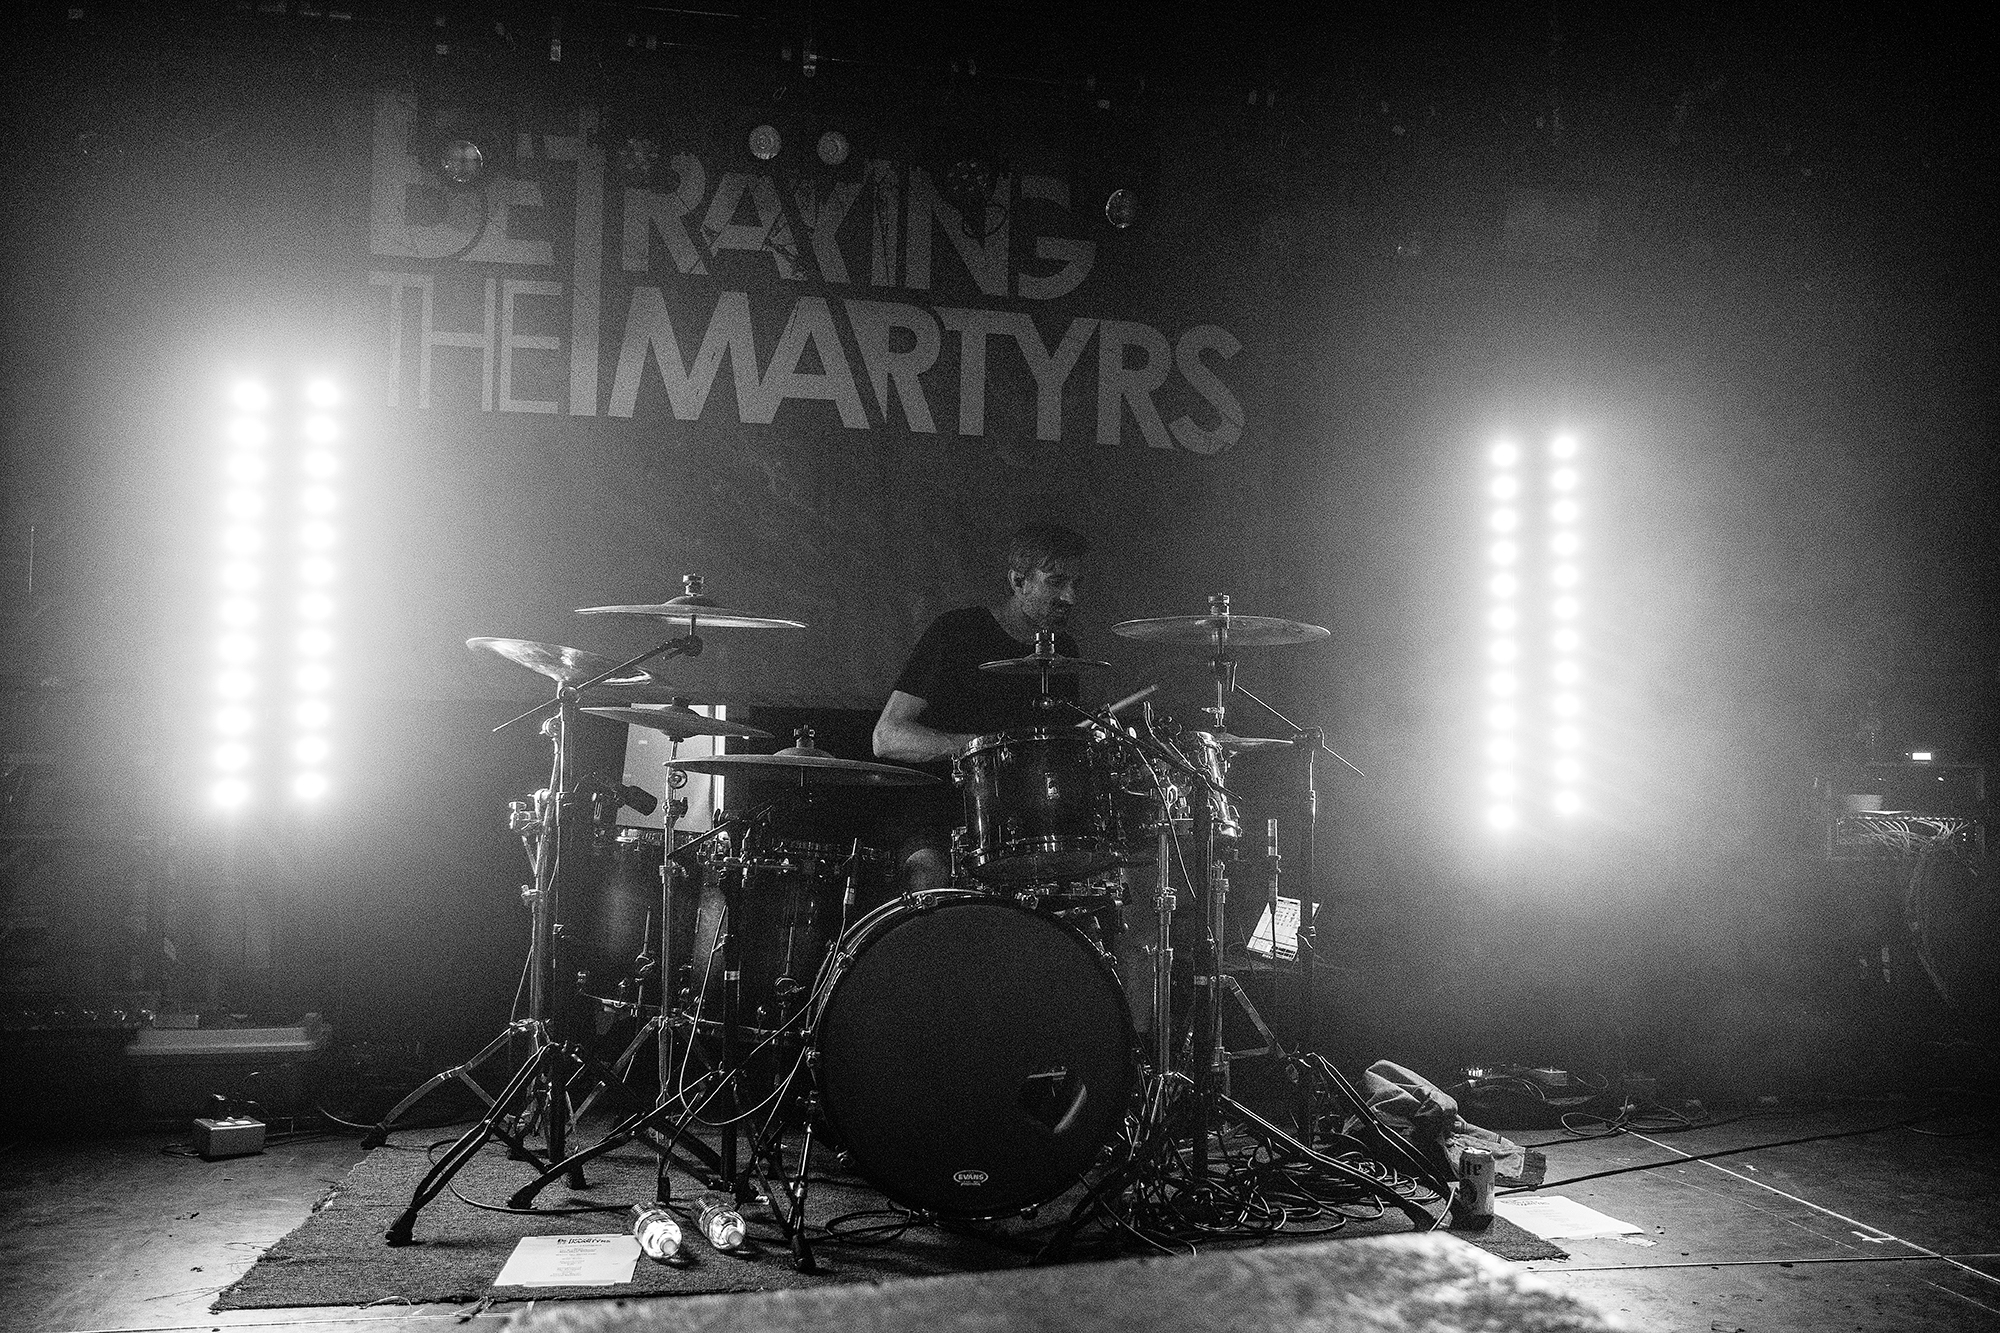 Betraying the Martyrs at 1720, Los Angeles, CA  2019.07.10